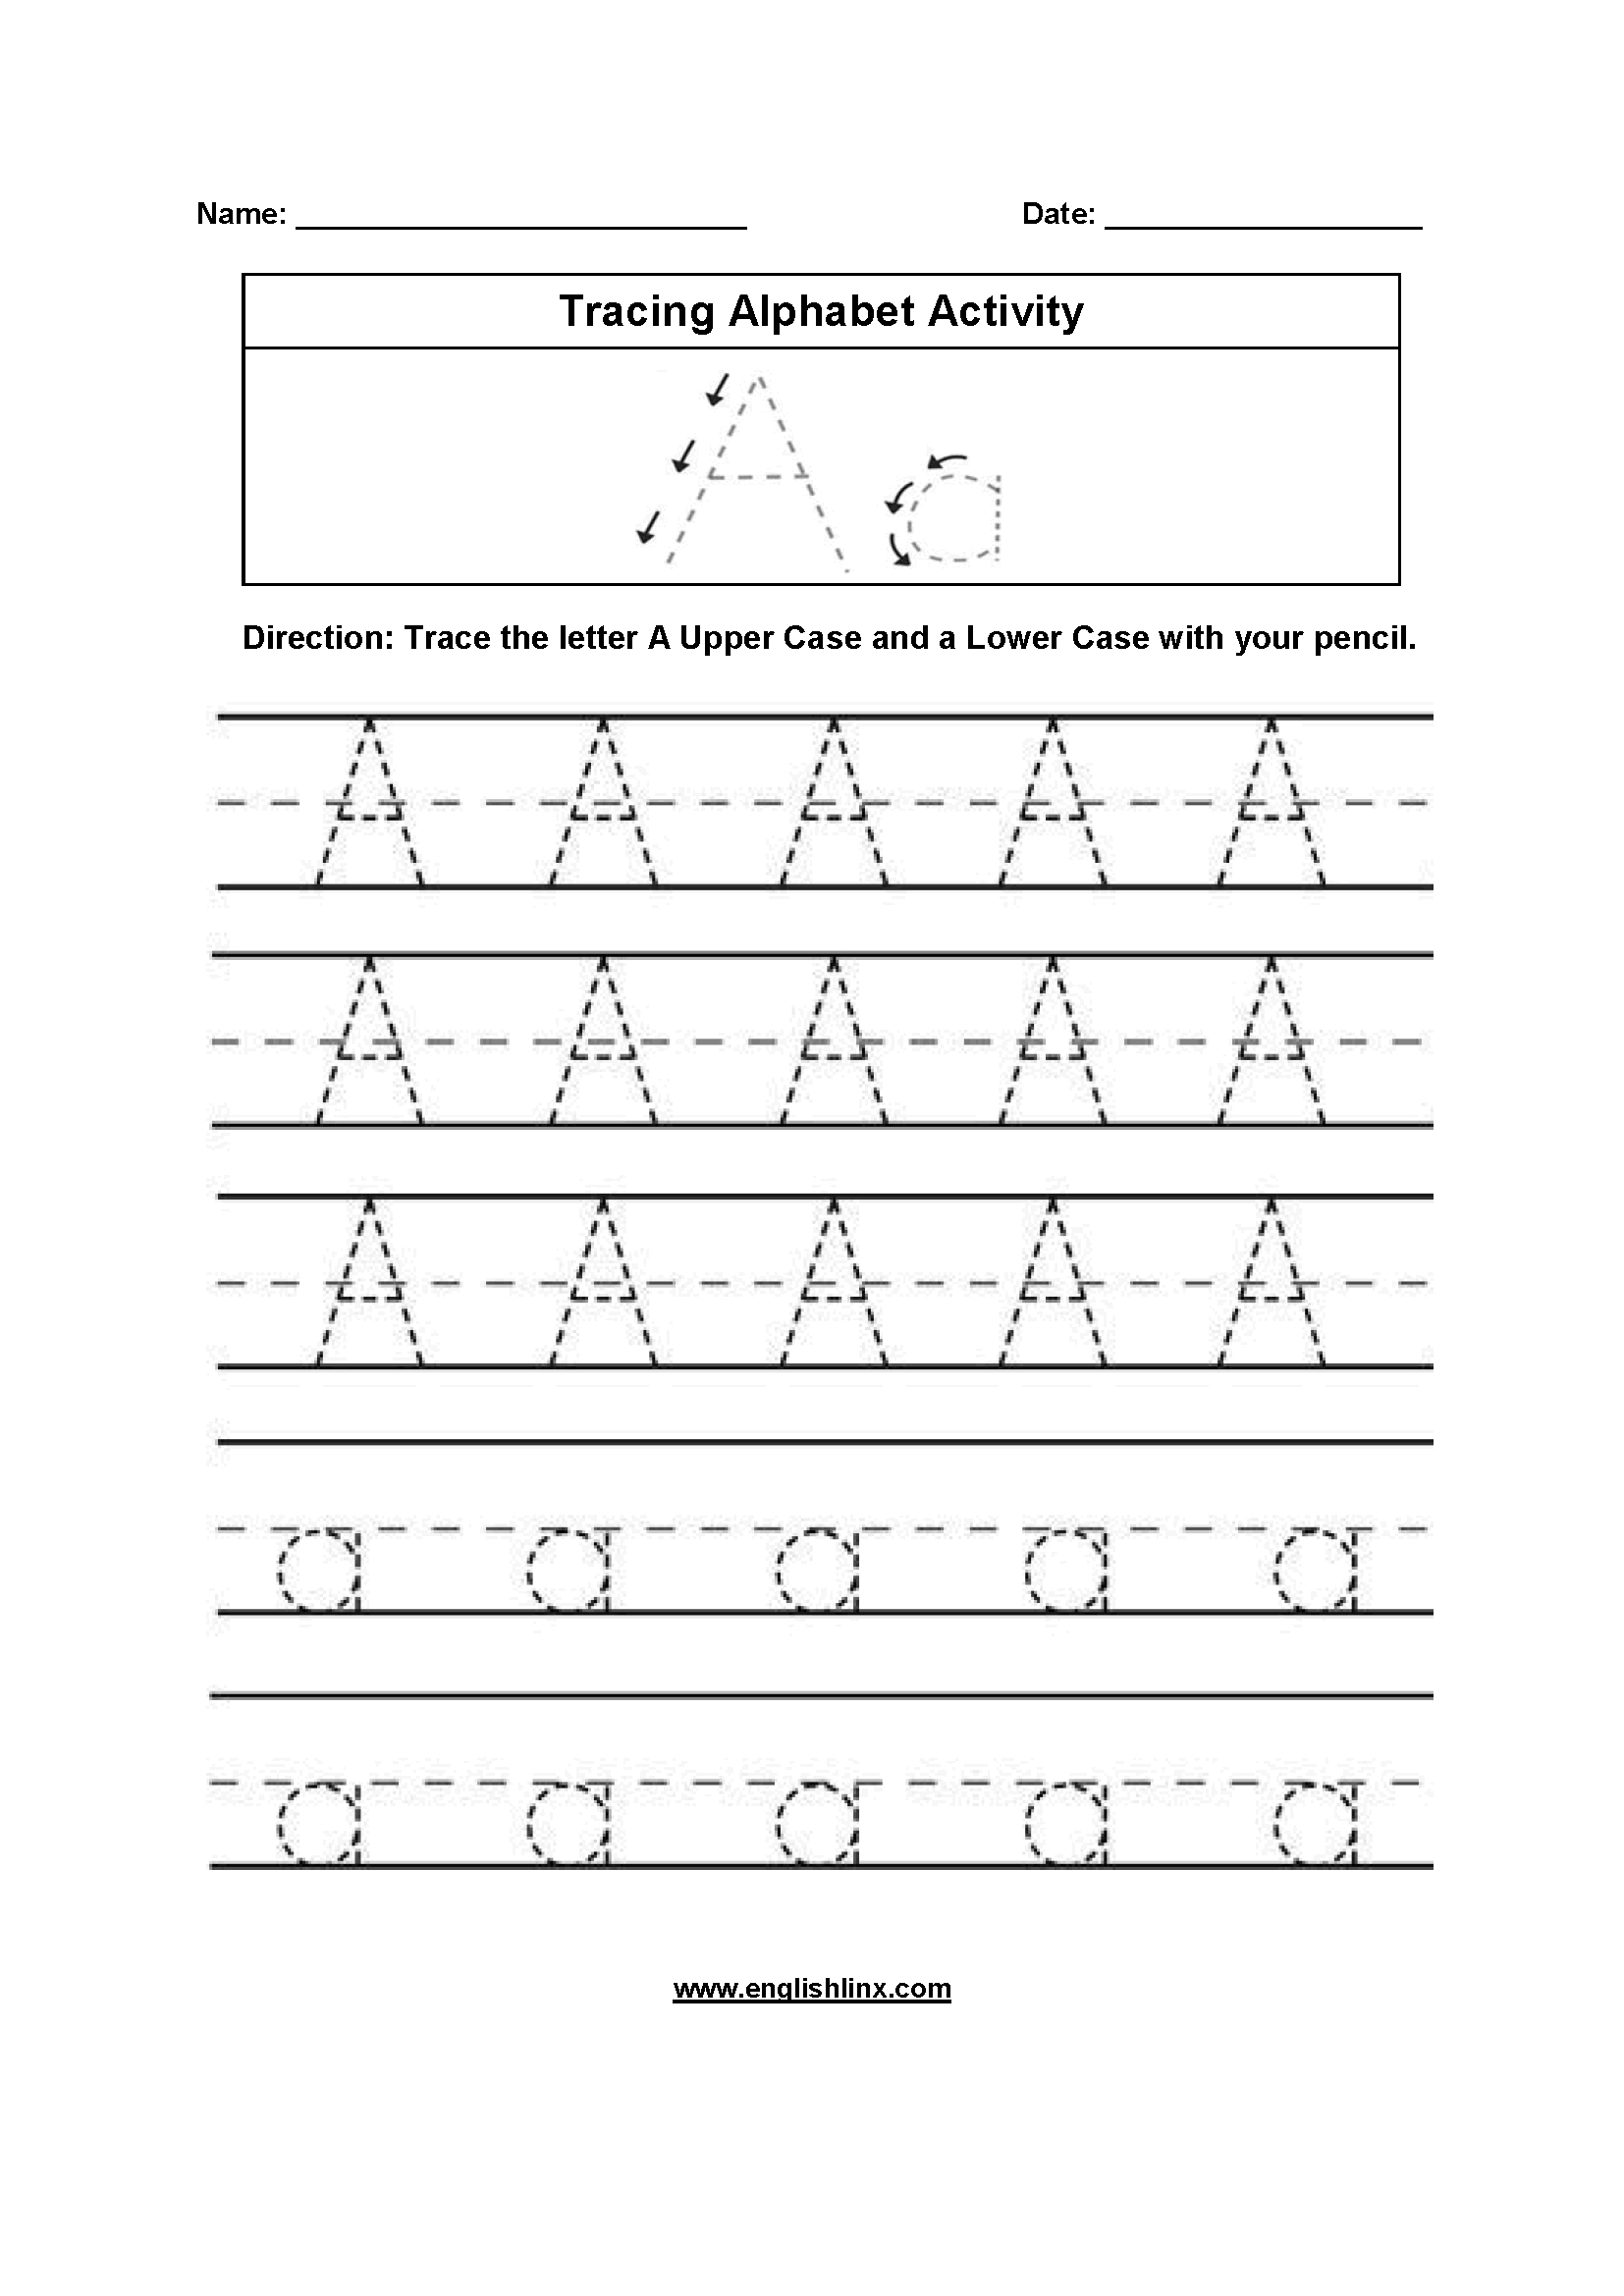 Alphabet Worksheets | Tracing Alphabet Worksheets pertaining to A Tracing Letters